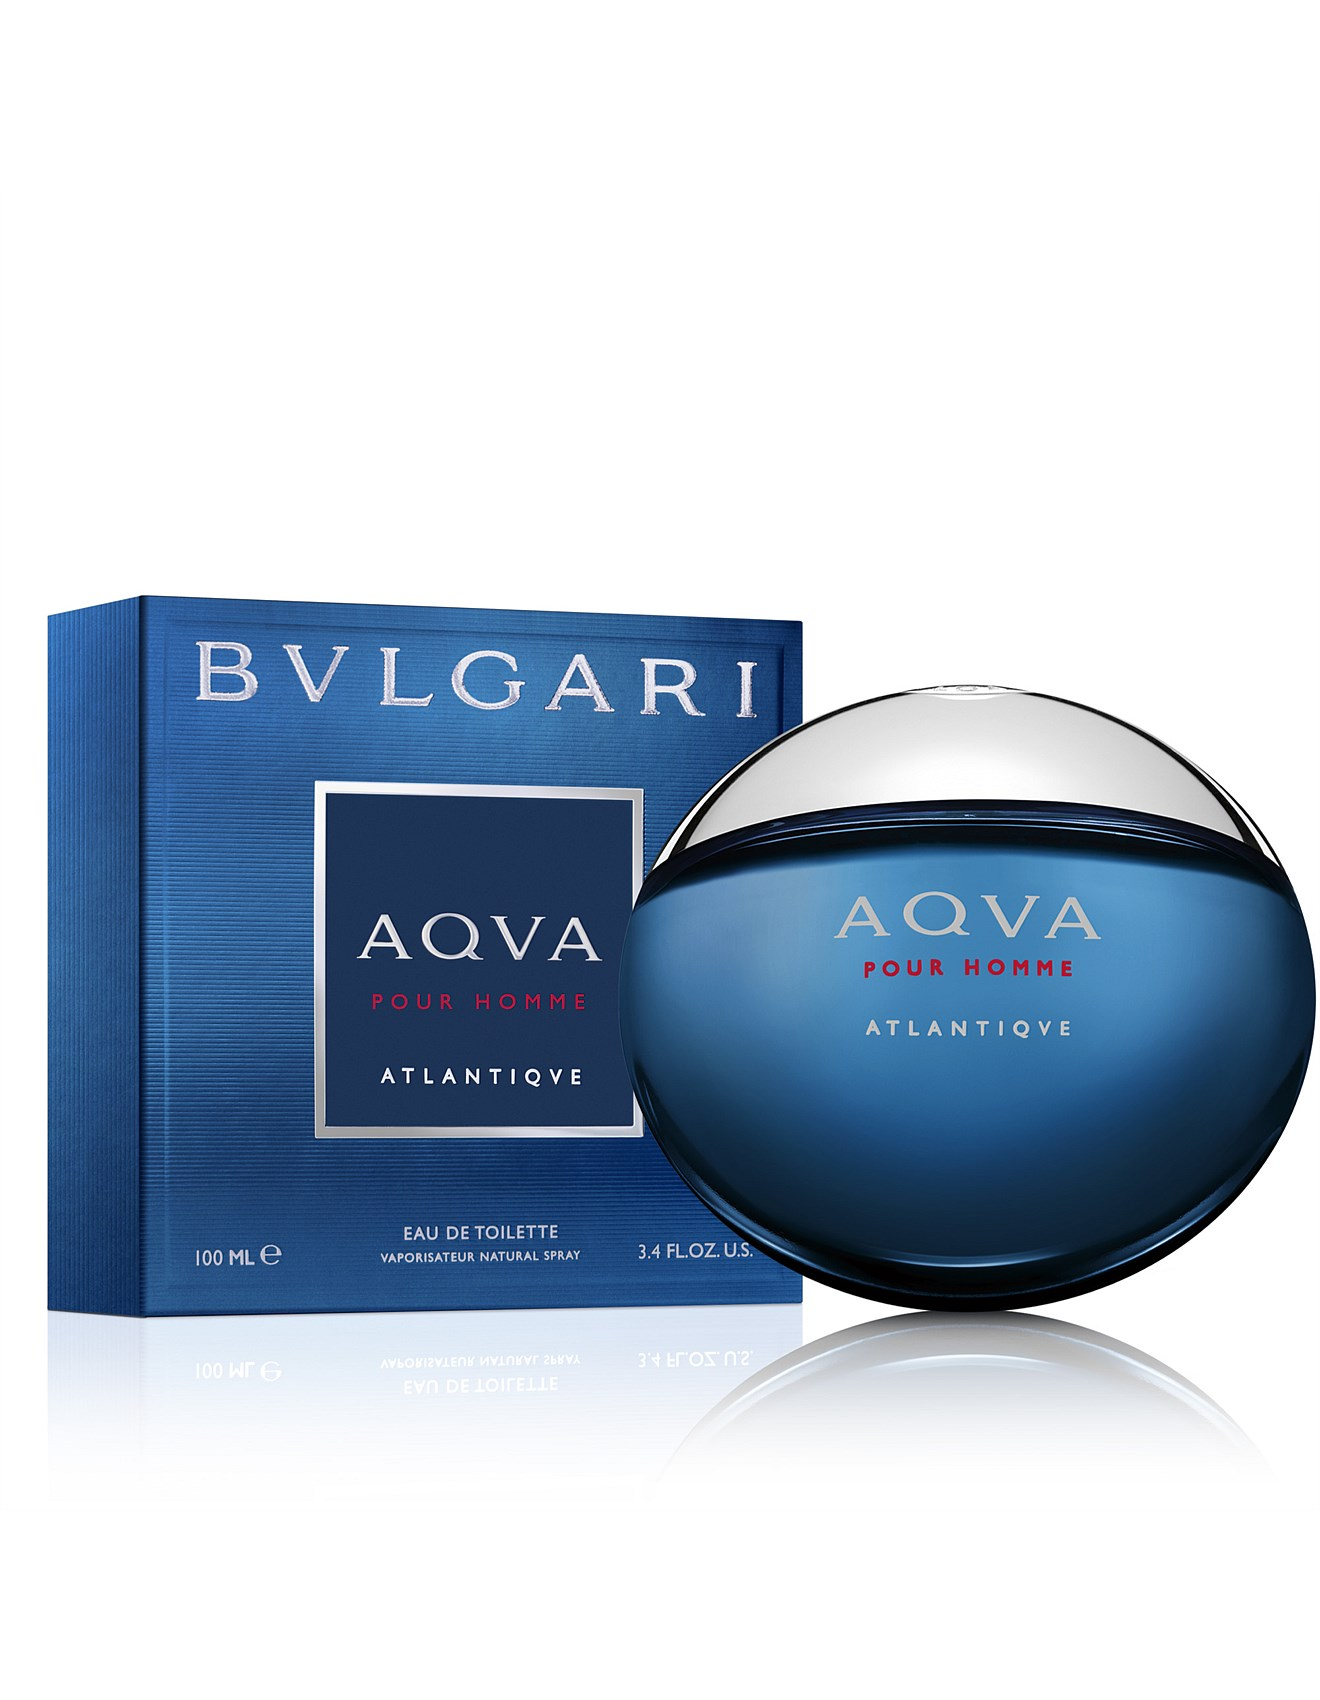 Perfume Buy Fragrances Perfume Online David Jones Bvlgari